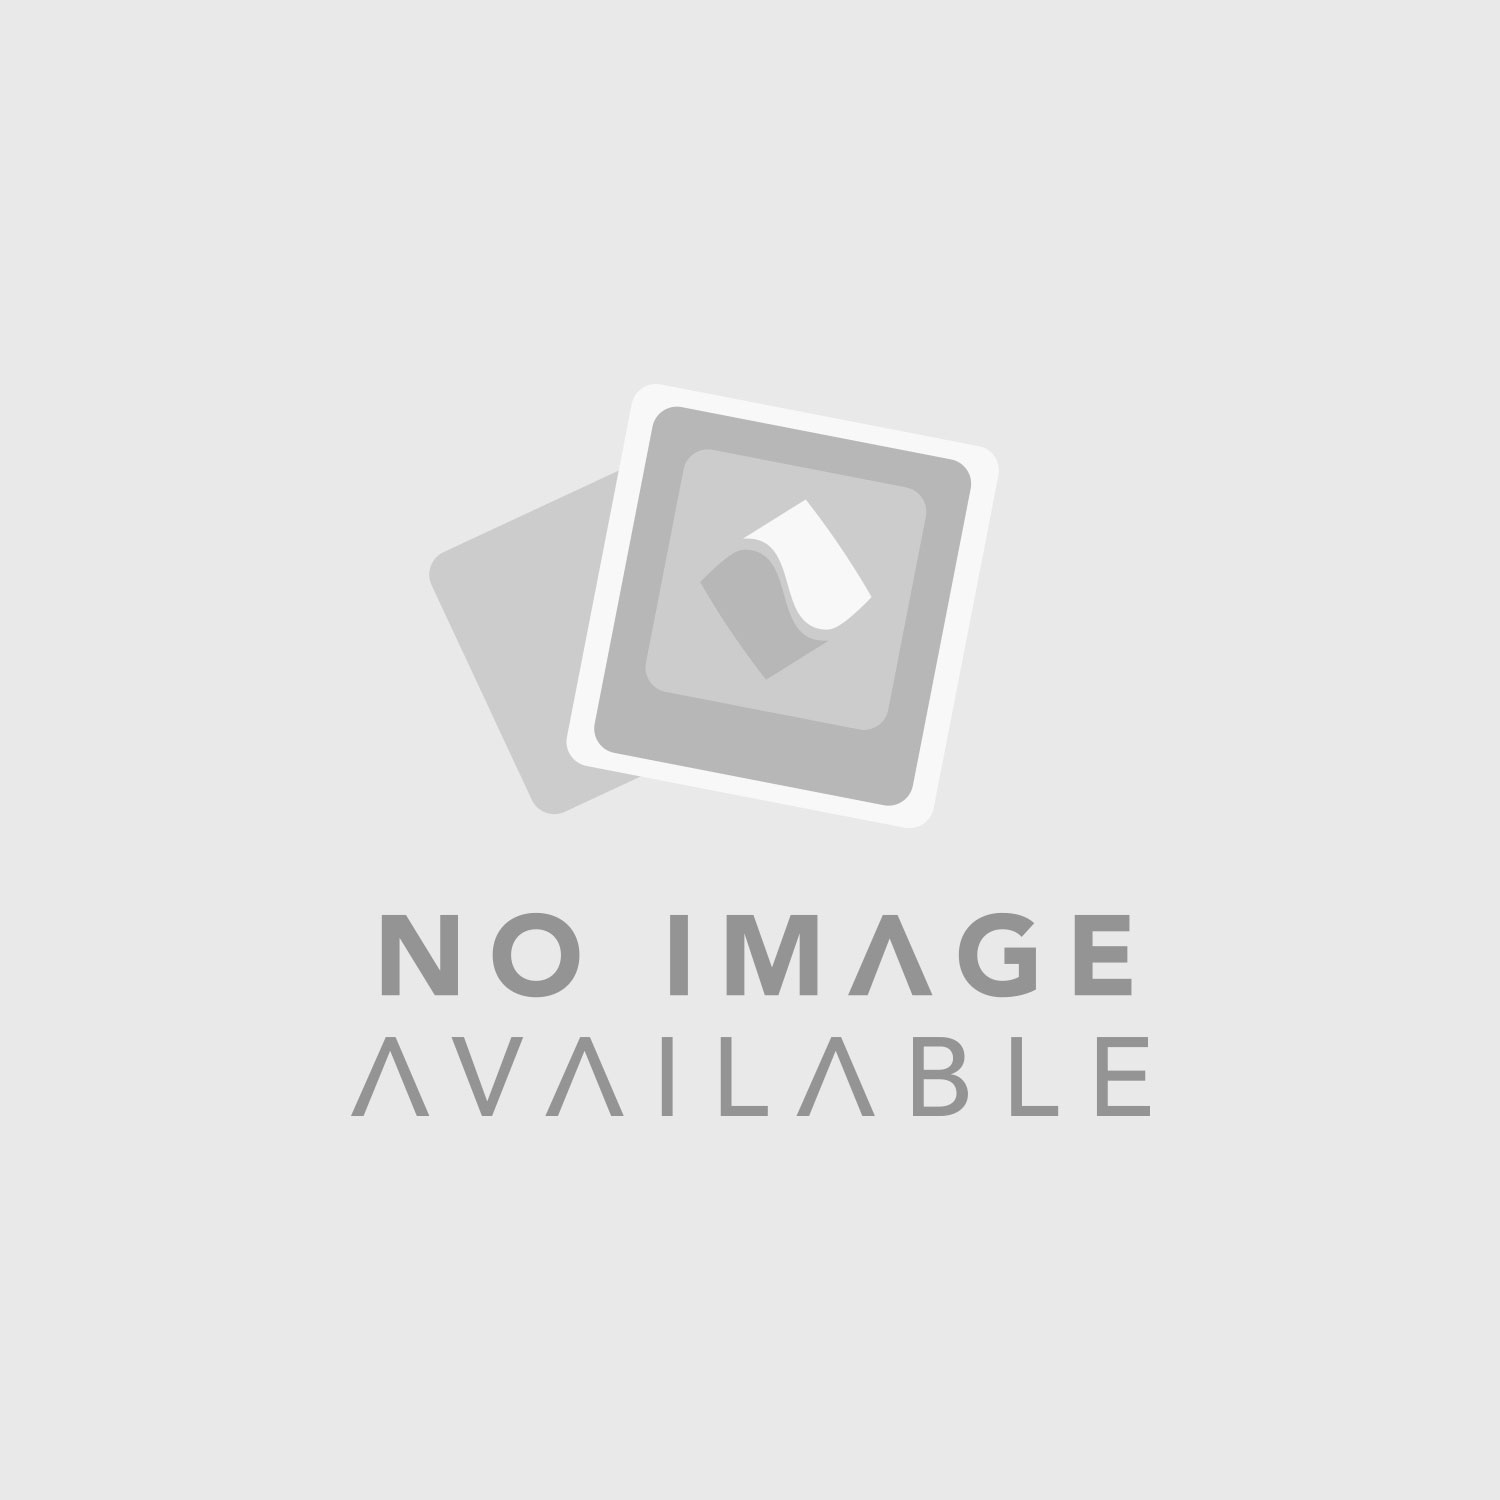 Chauvet Swarm Wash FX 4-in-1 LED Effect Light